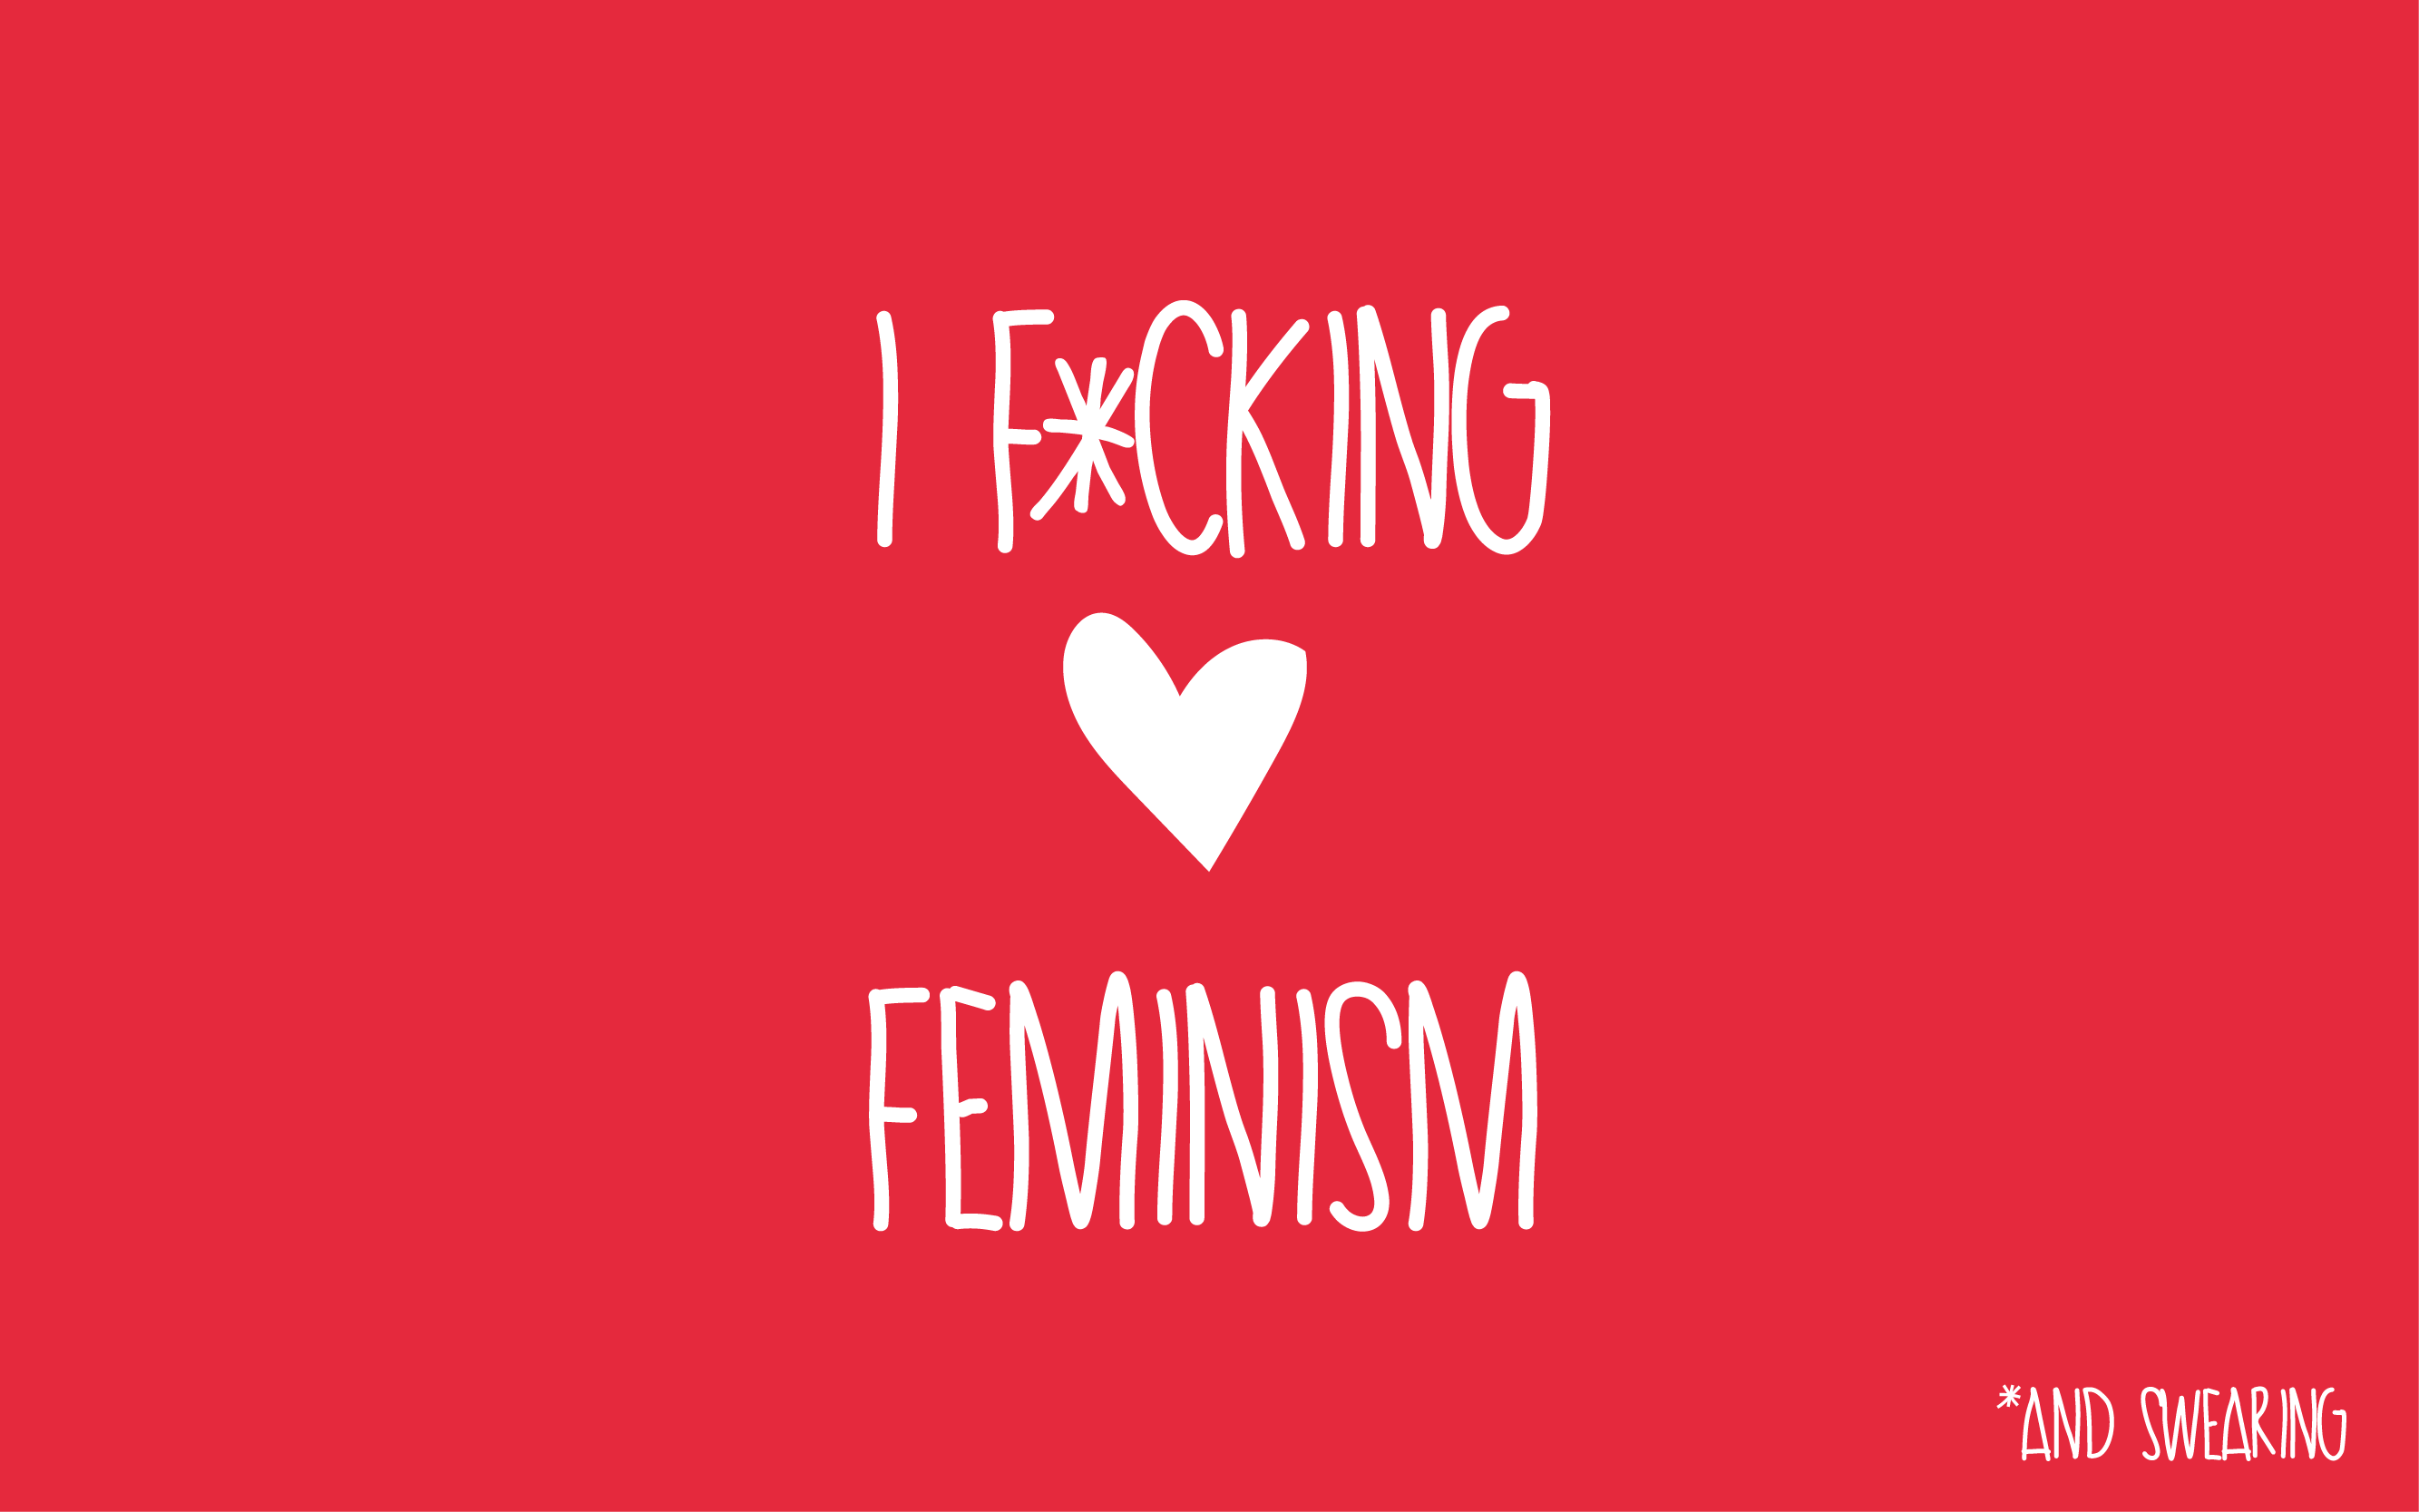 Feminist High Resolution Wallpapers (Jayna Mingus, 2667x1667 px)